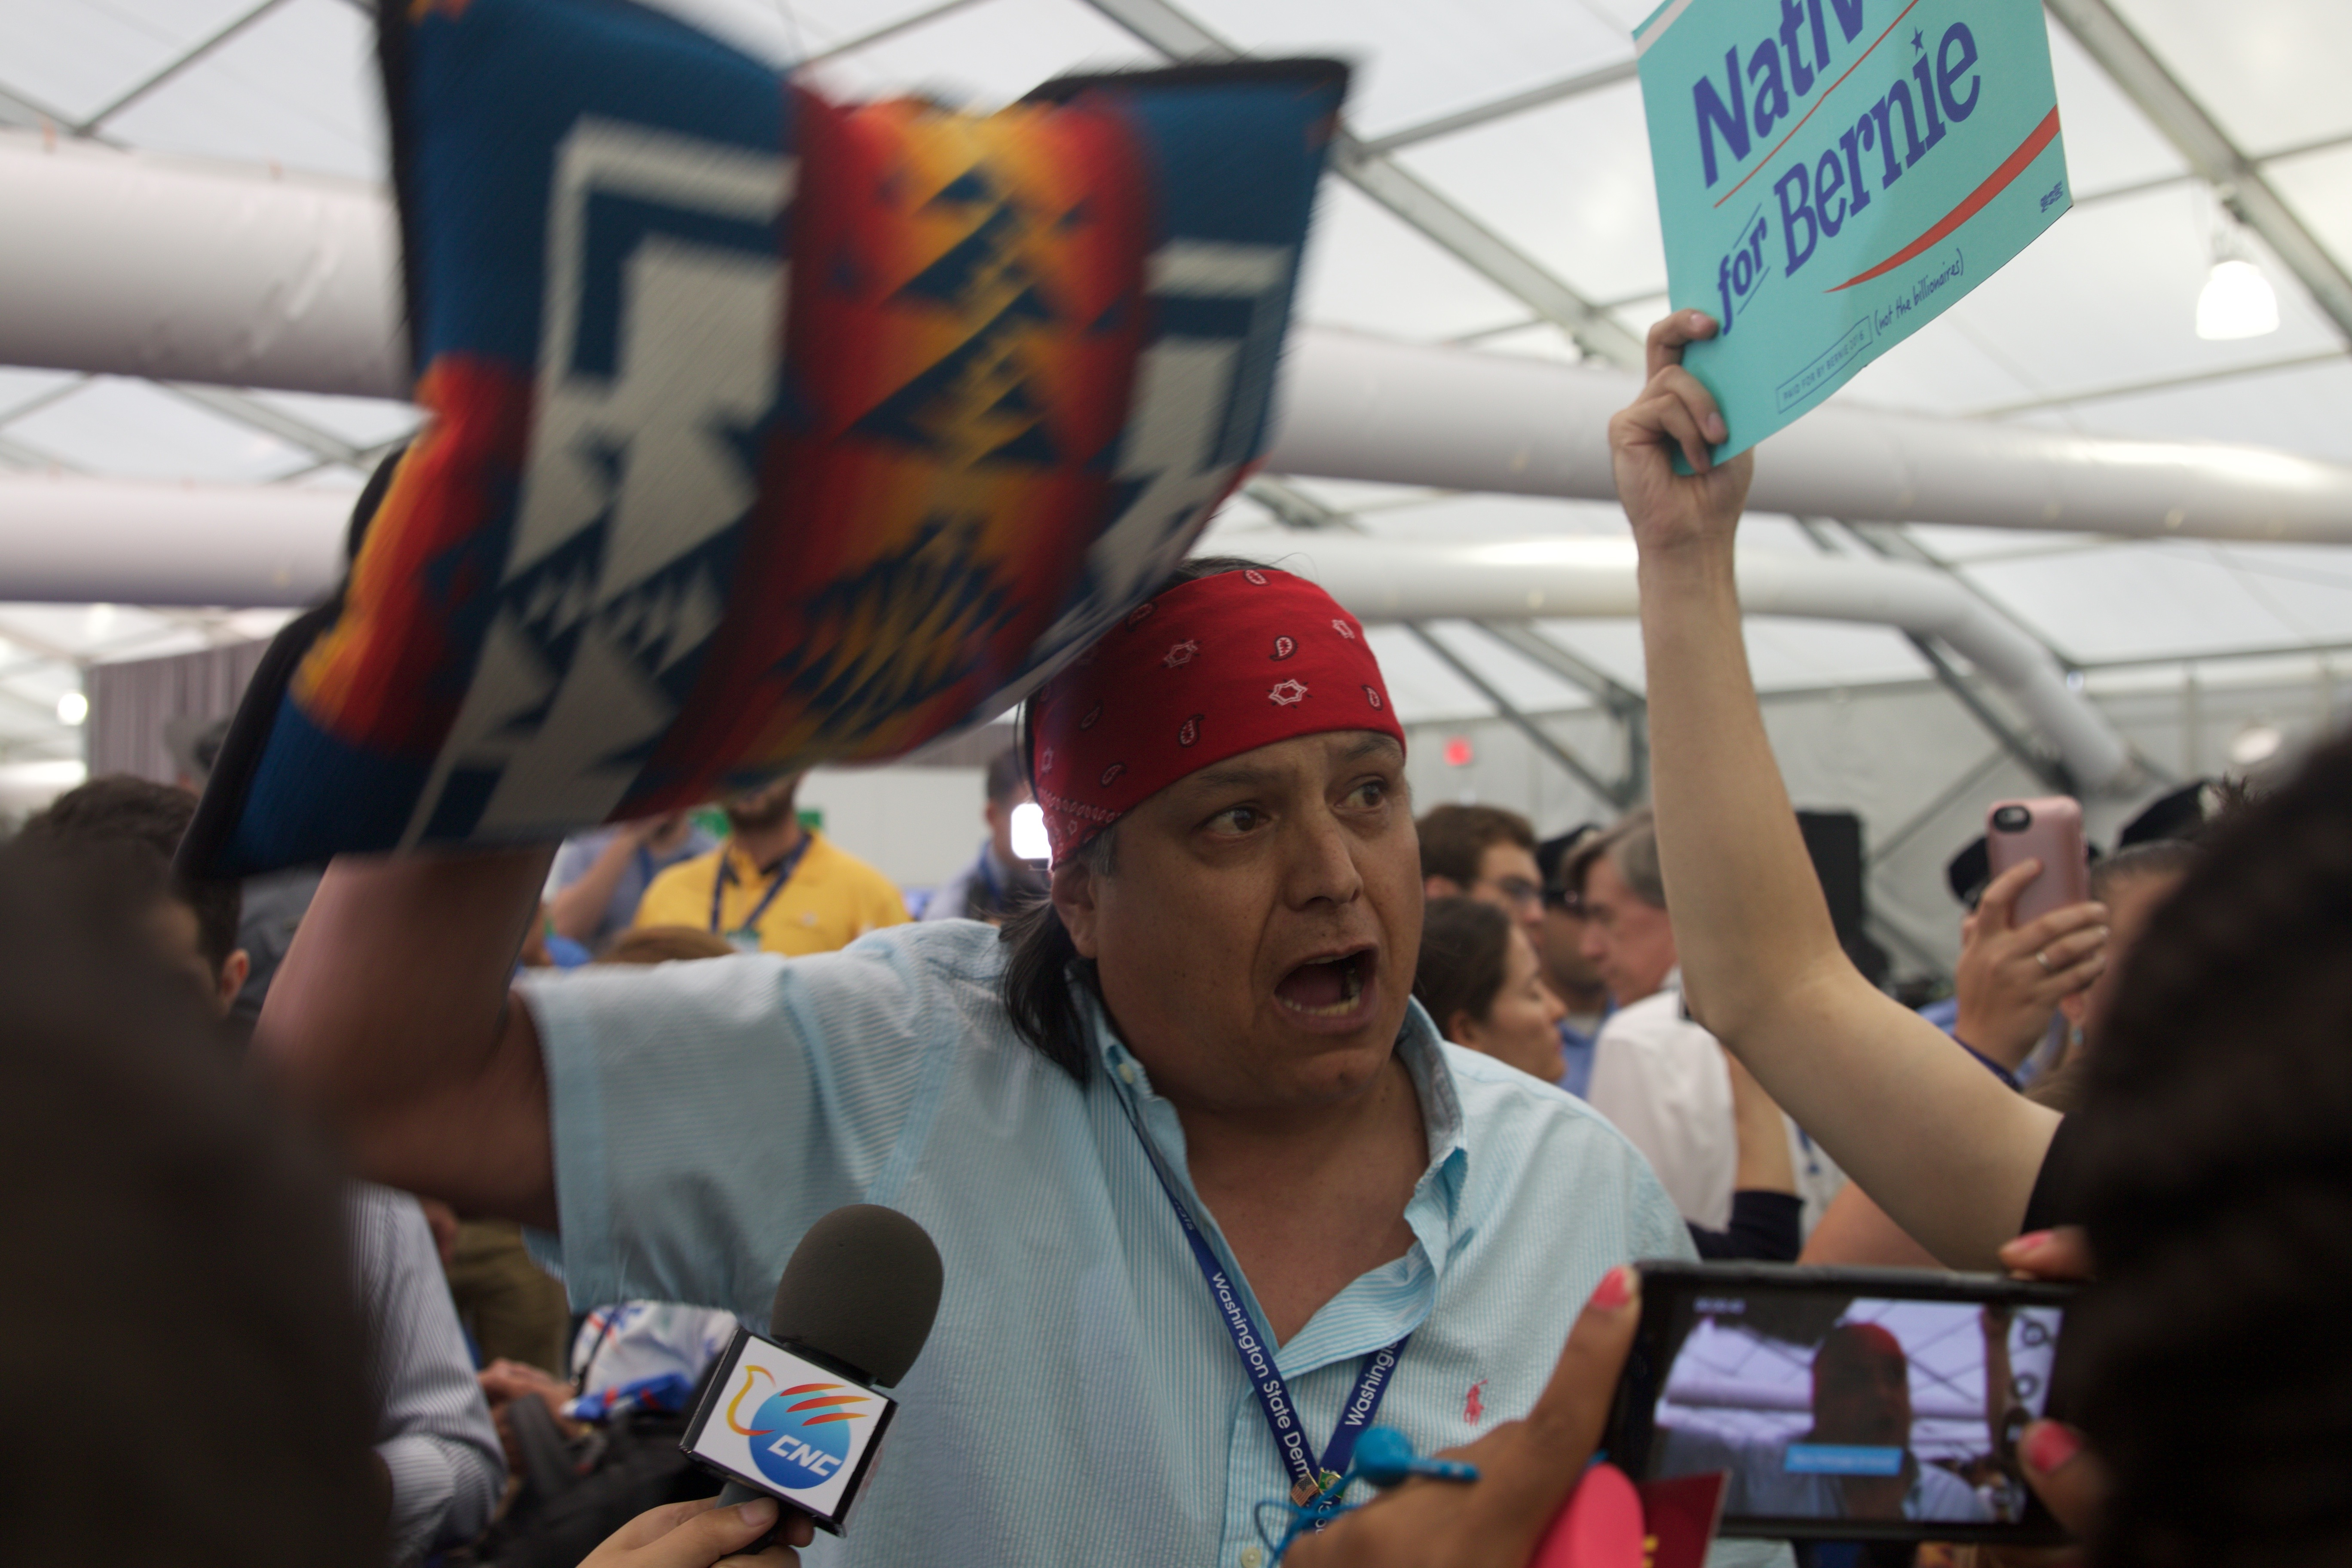 The staged walkout Tuesday night moved from the Democratic National Convention arena to the media tents. (Photo by Kelsey DeGideo/Cronkite News)